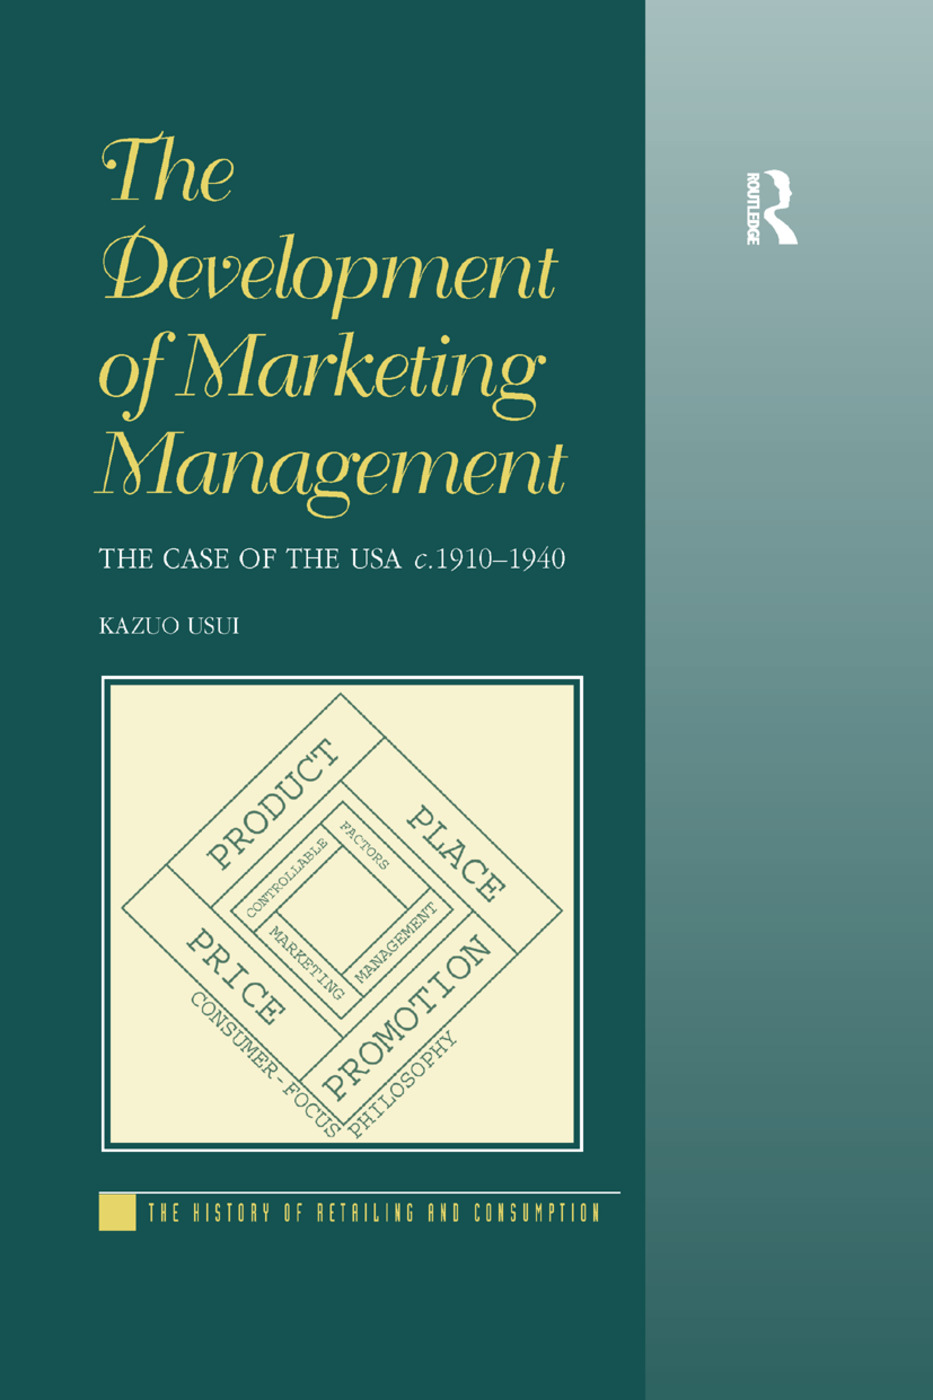 The Development of Marketing Management: The Case of the USA c. 1910-1940 book cover